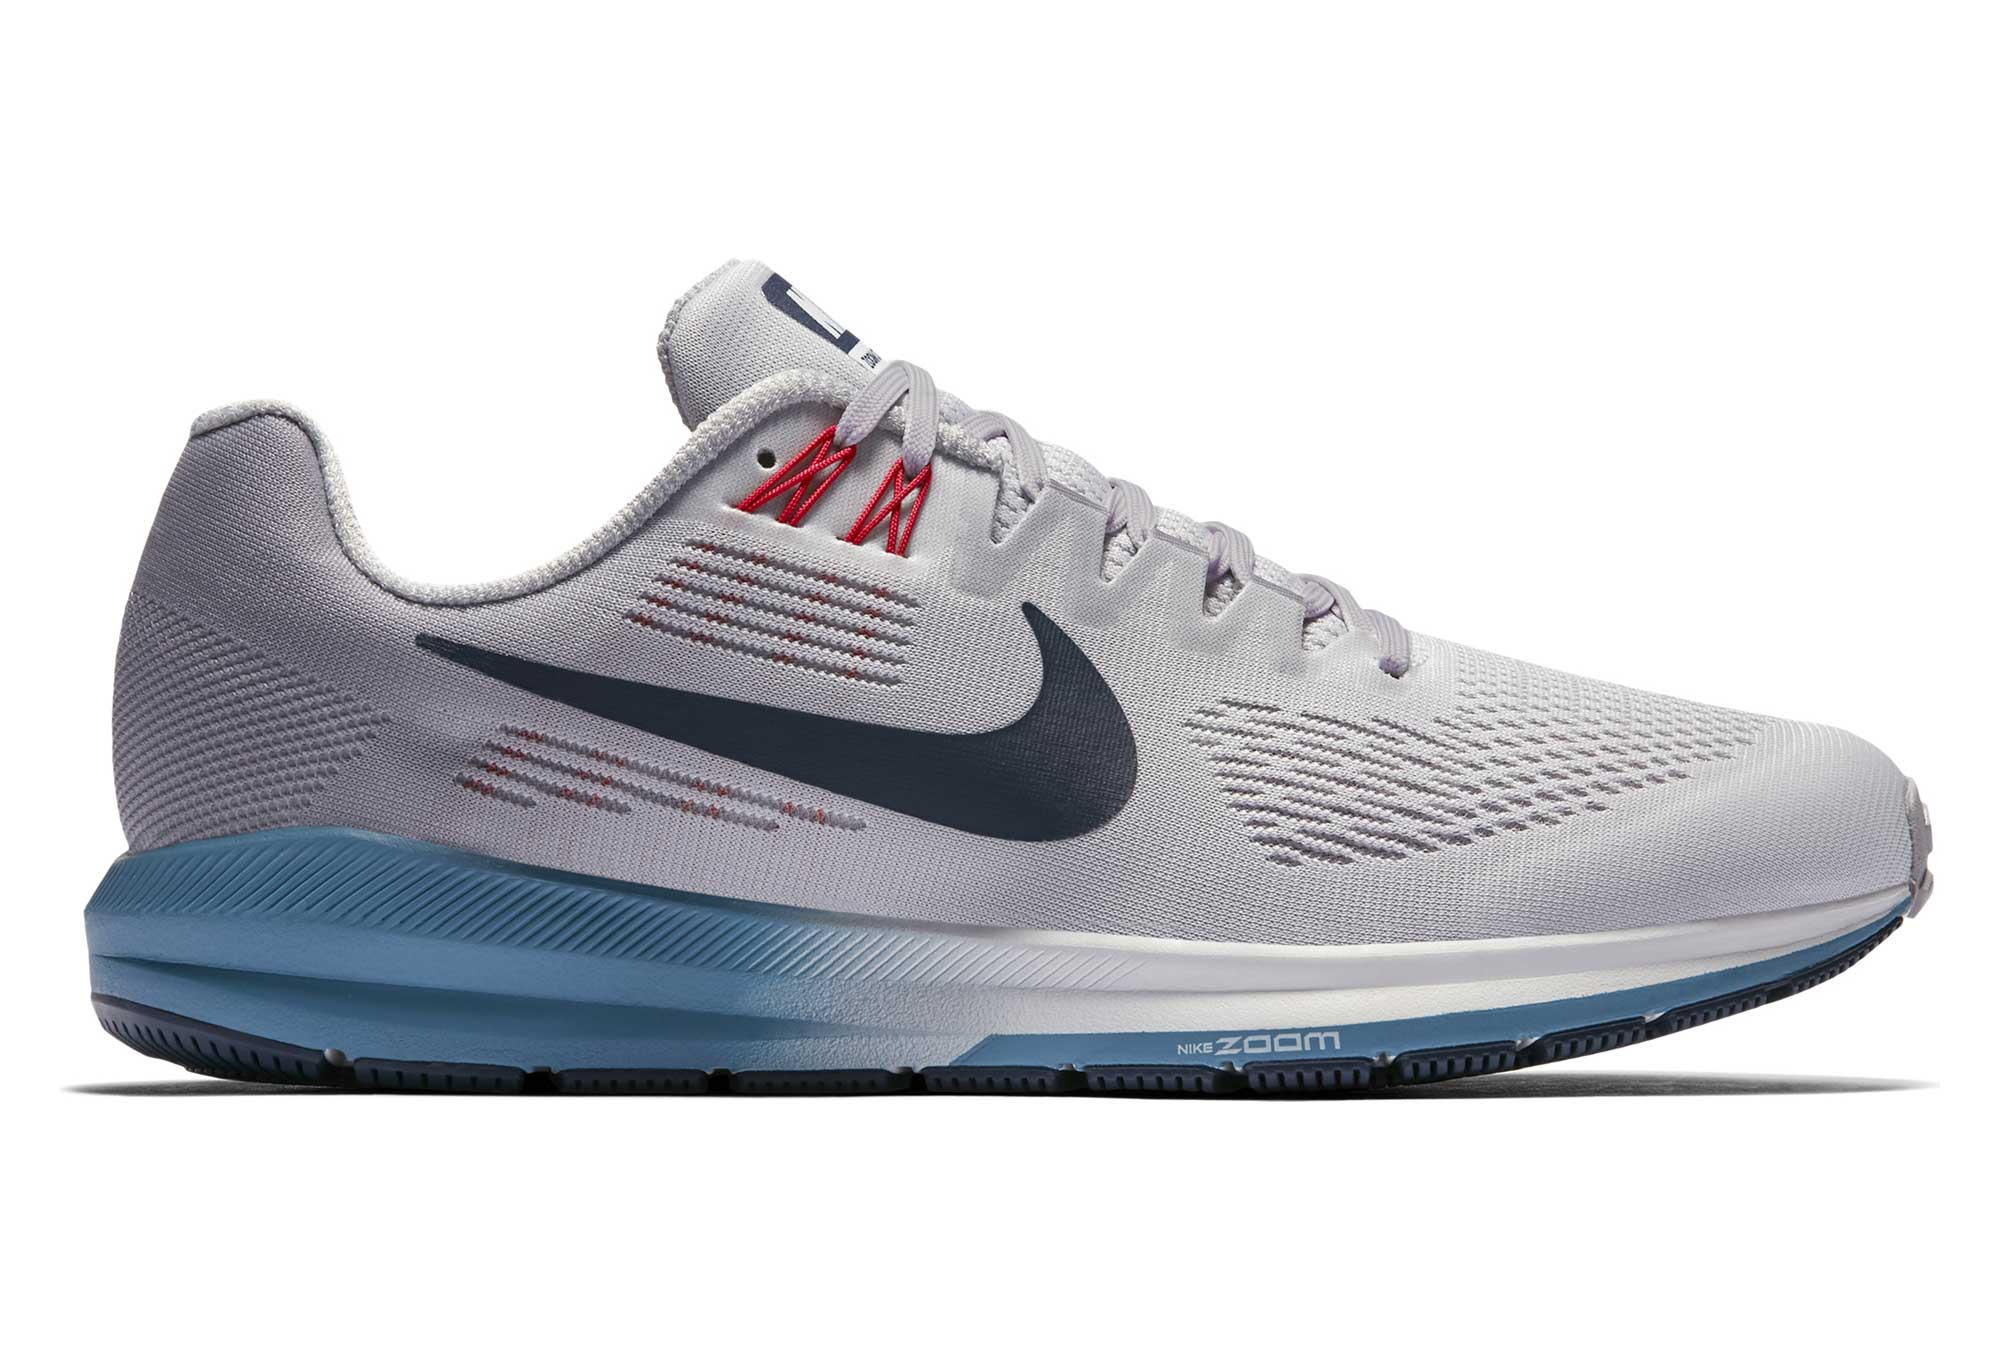 Chaussures de Running Nike Air Zoom Structure 21 Gris   Bleu ... 32276beb910